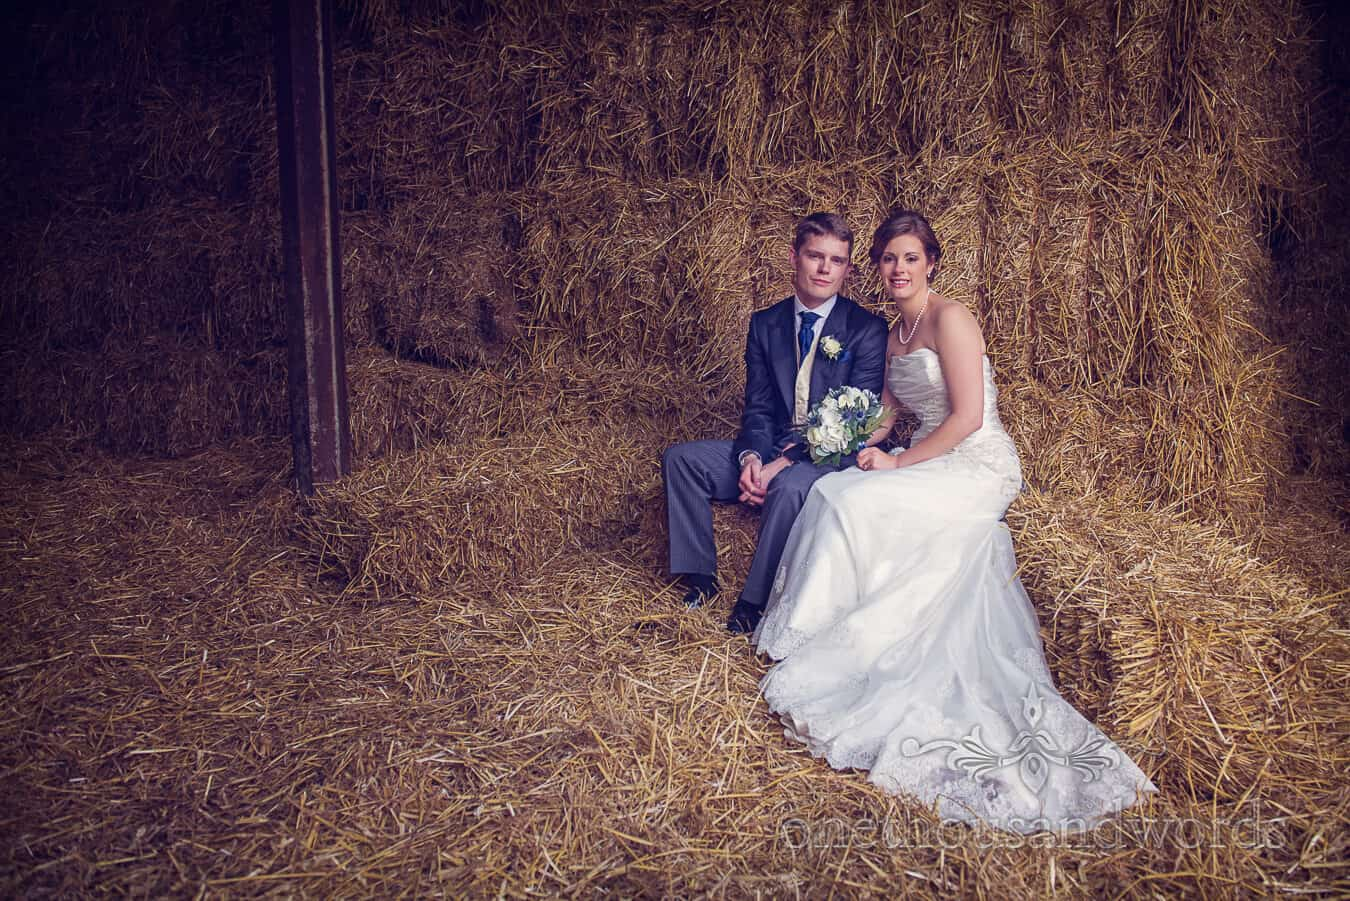 Kerry and James' Countryside Themed Wedding Photos